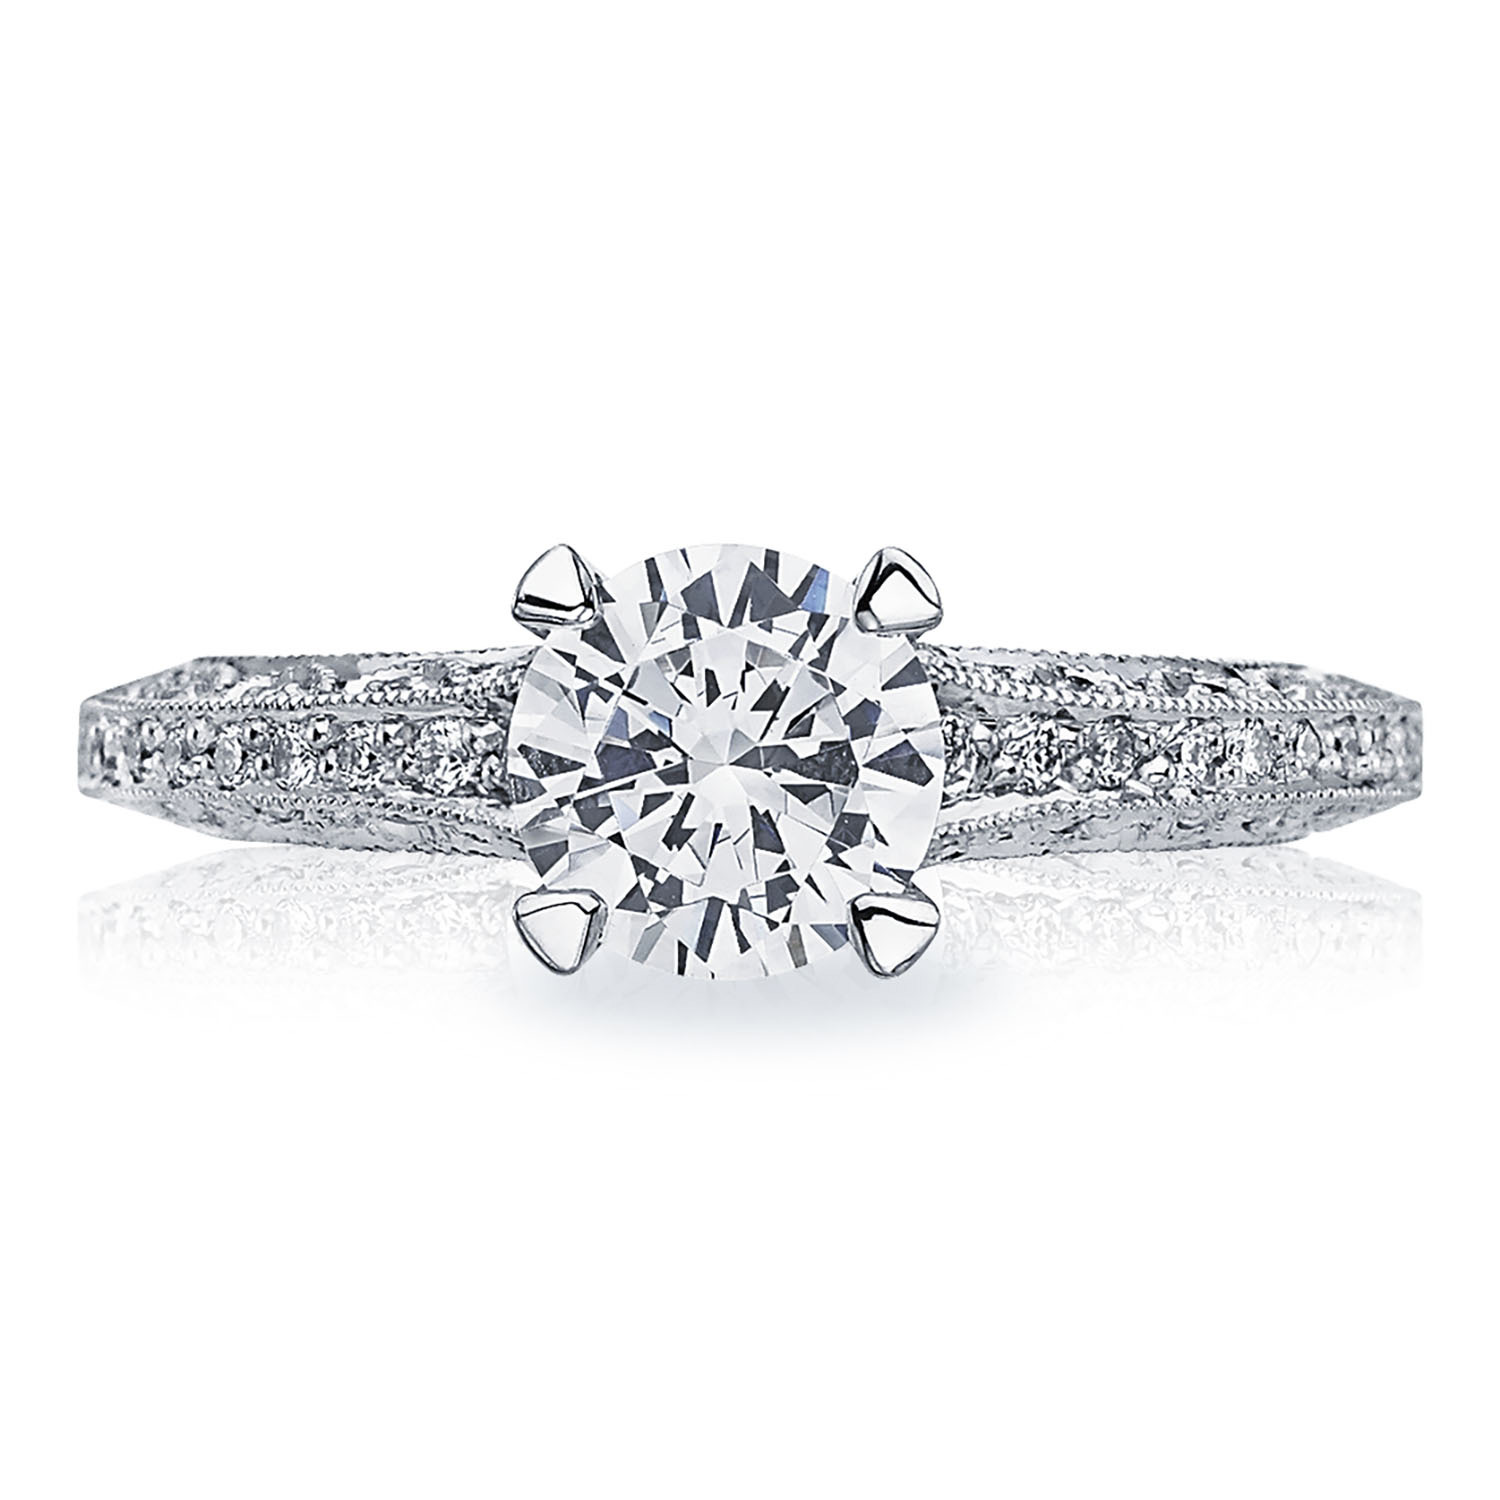 https://www.ackermanjewelers.com/upload/product/2616RD.jpg